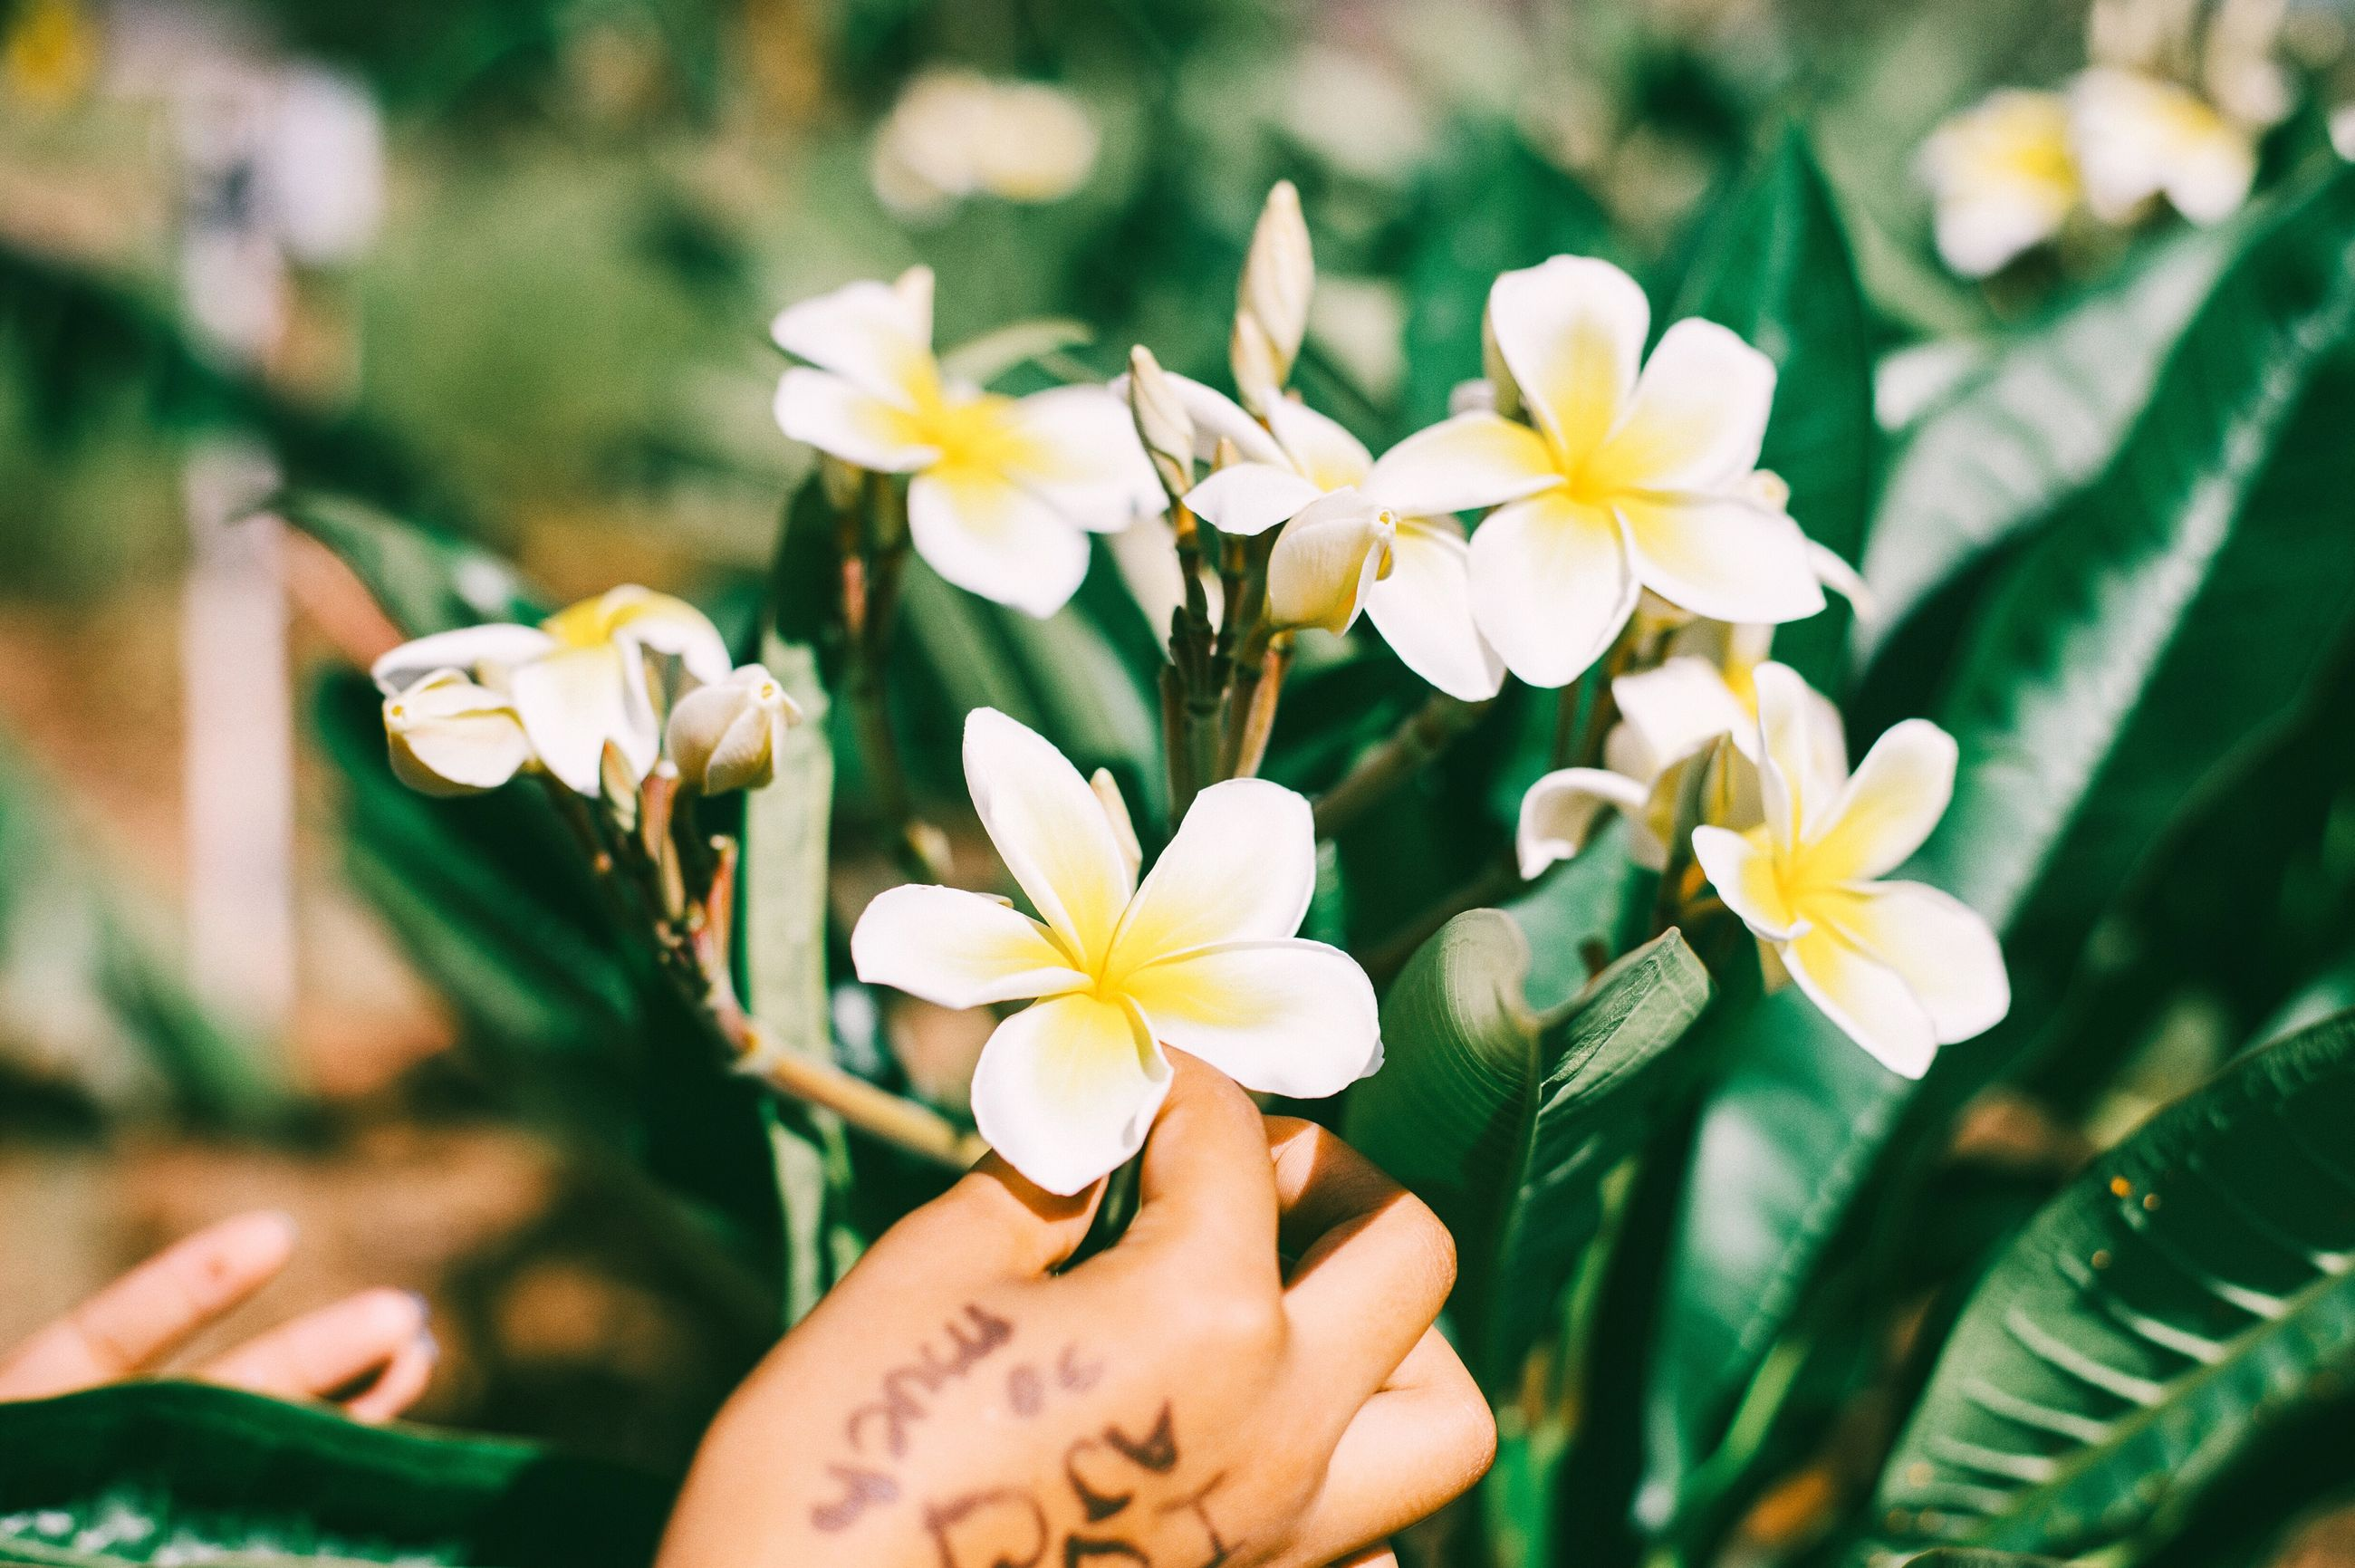 flower, petal, freshness, fragility, flower head, growth, white color, beauty in nature, focus on foreground, close-up, pollen, blooming, nature, yellow, stamen, plant, daisy, in bloom, blossom, person